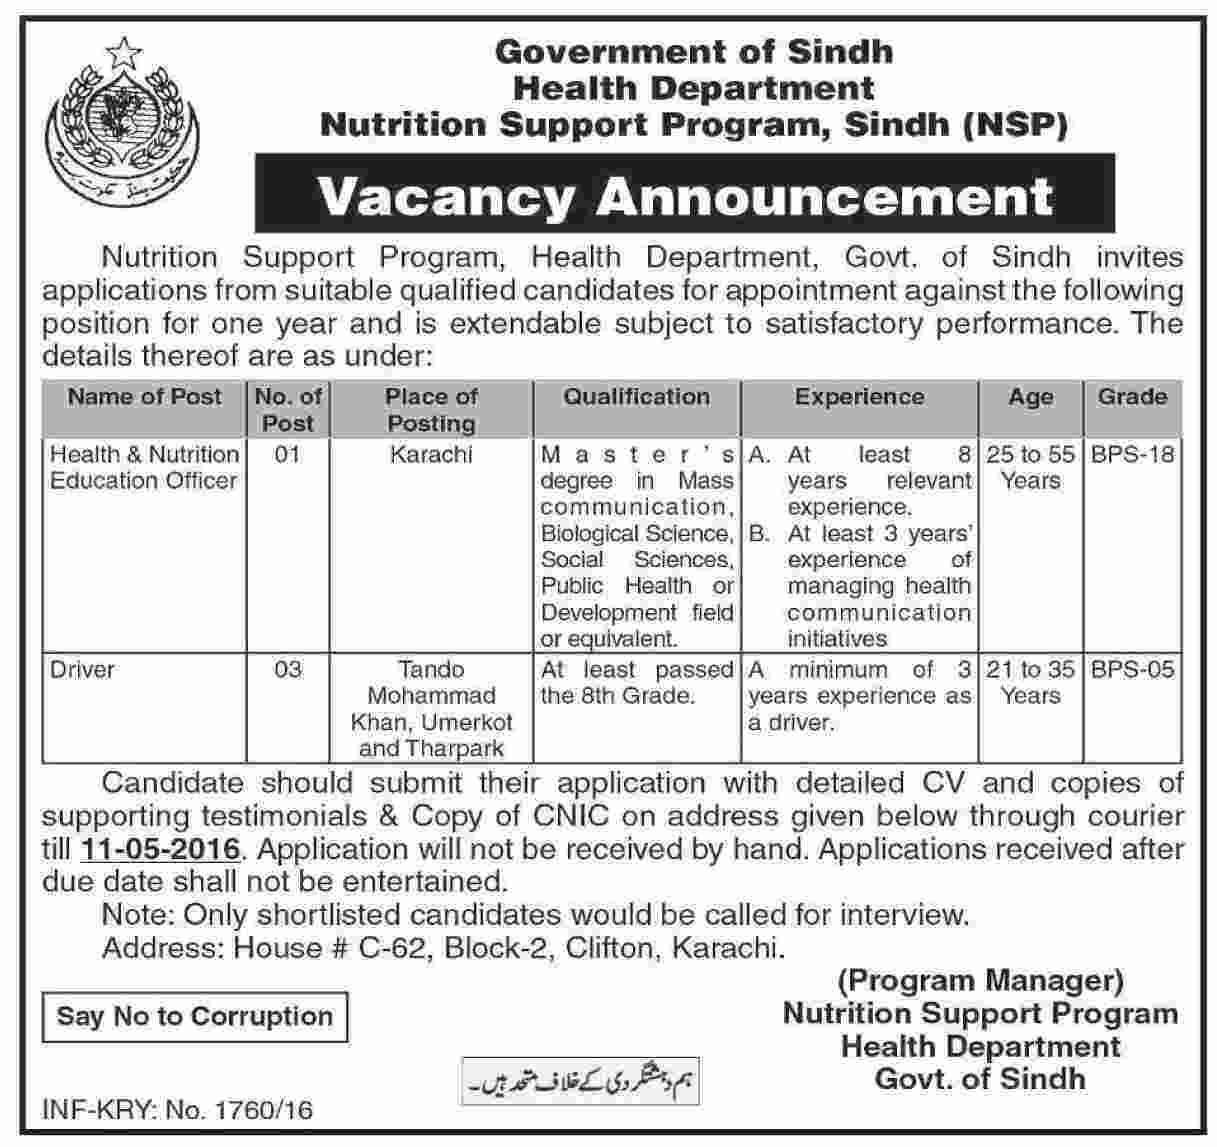 Government of Sindh Health Department Jobs 2016